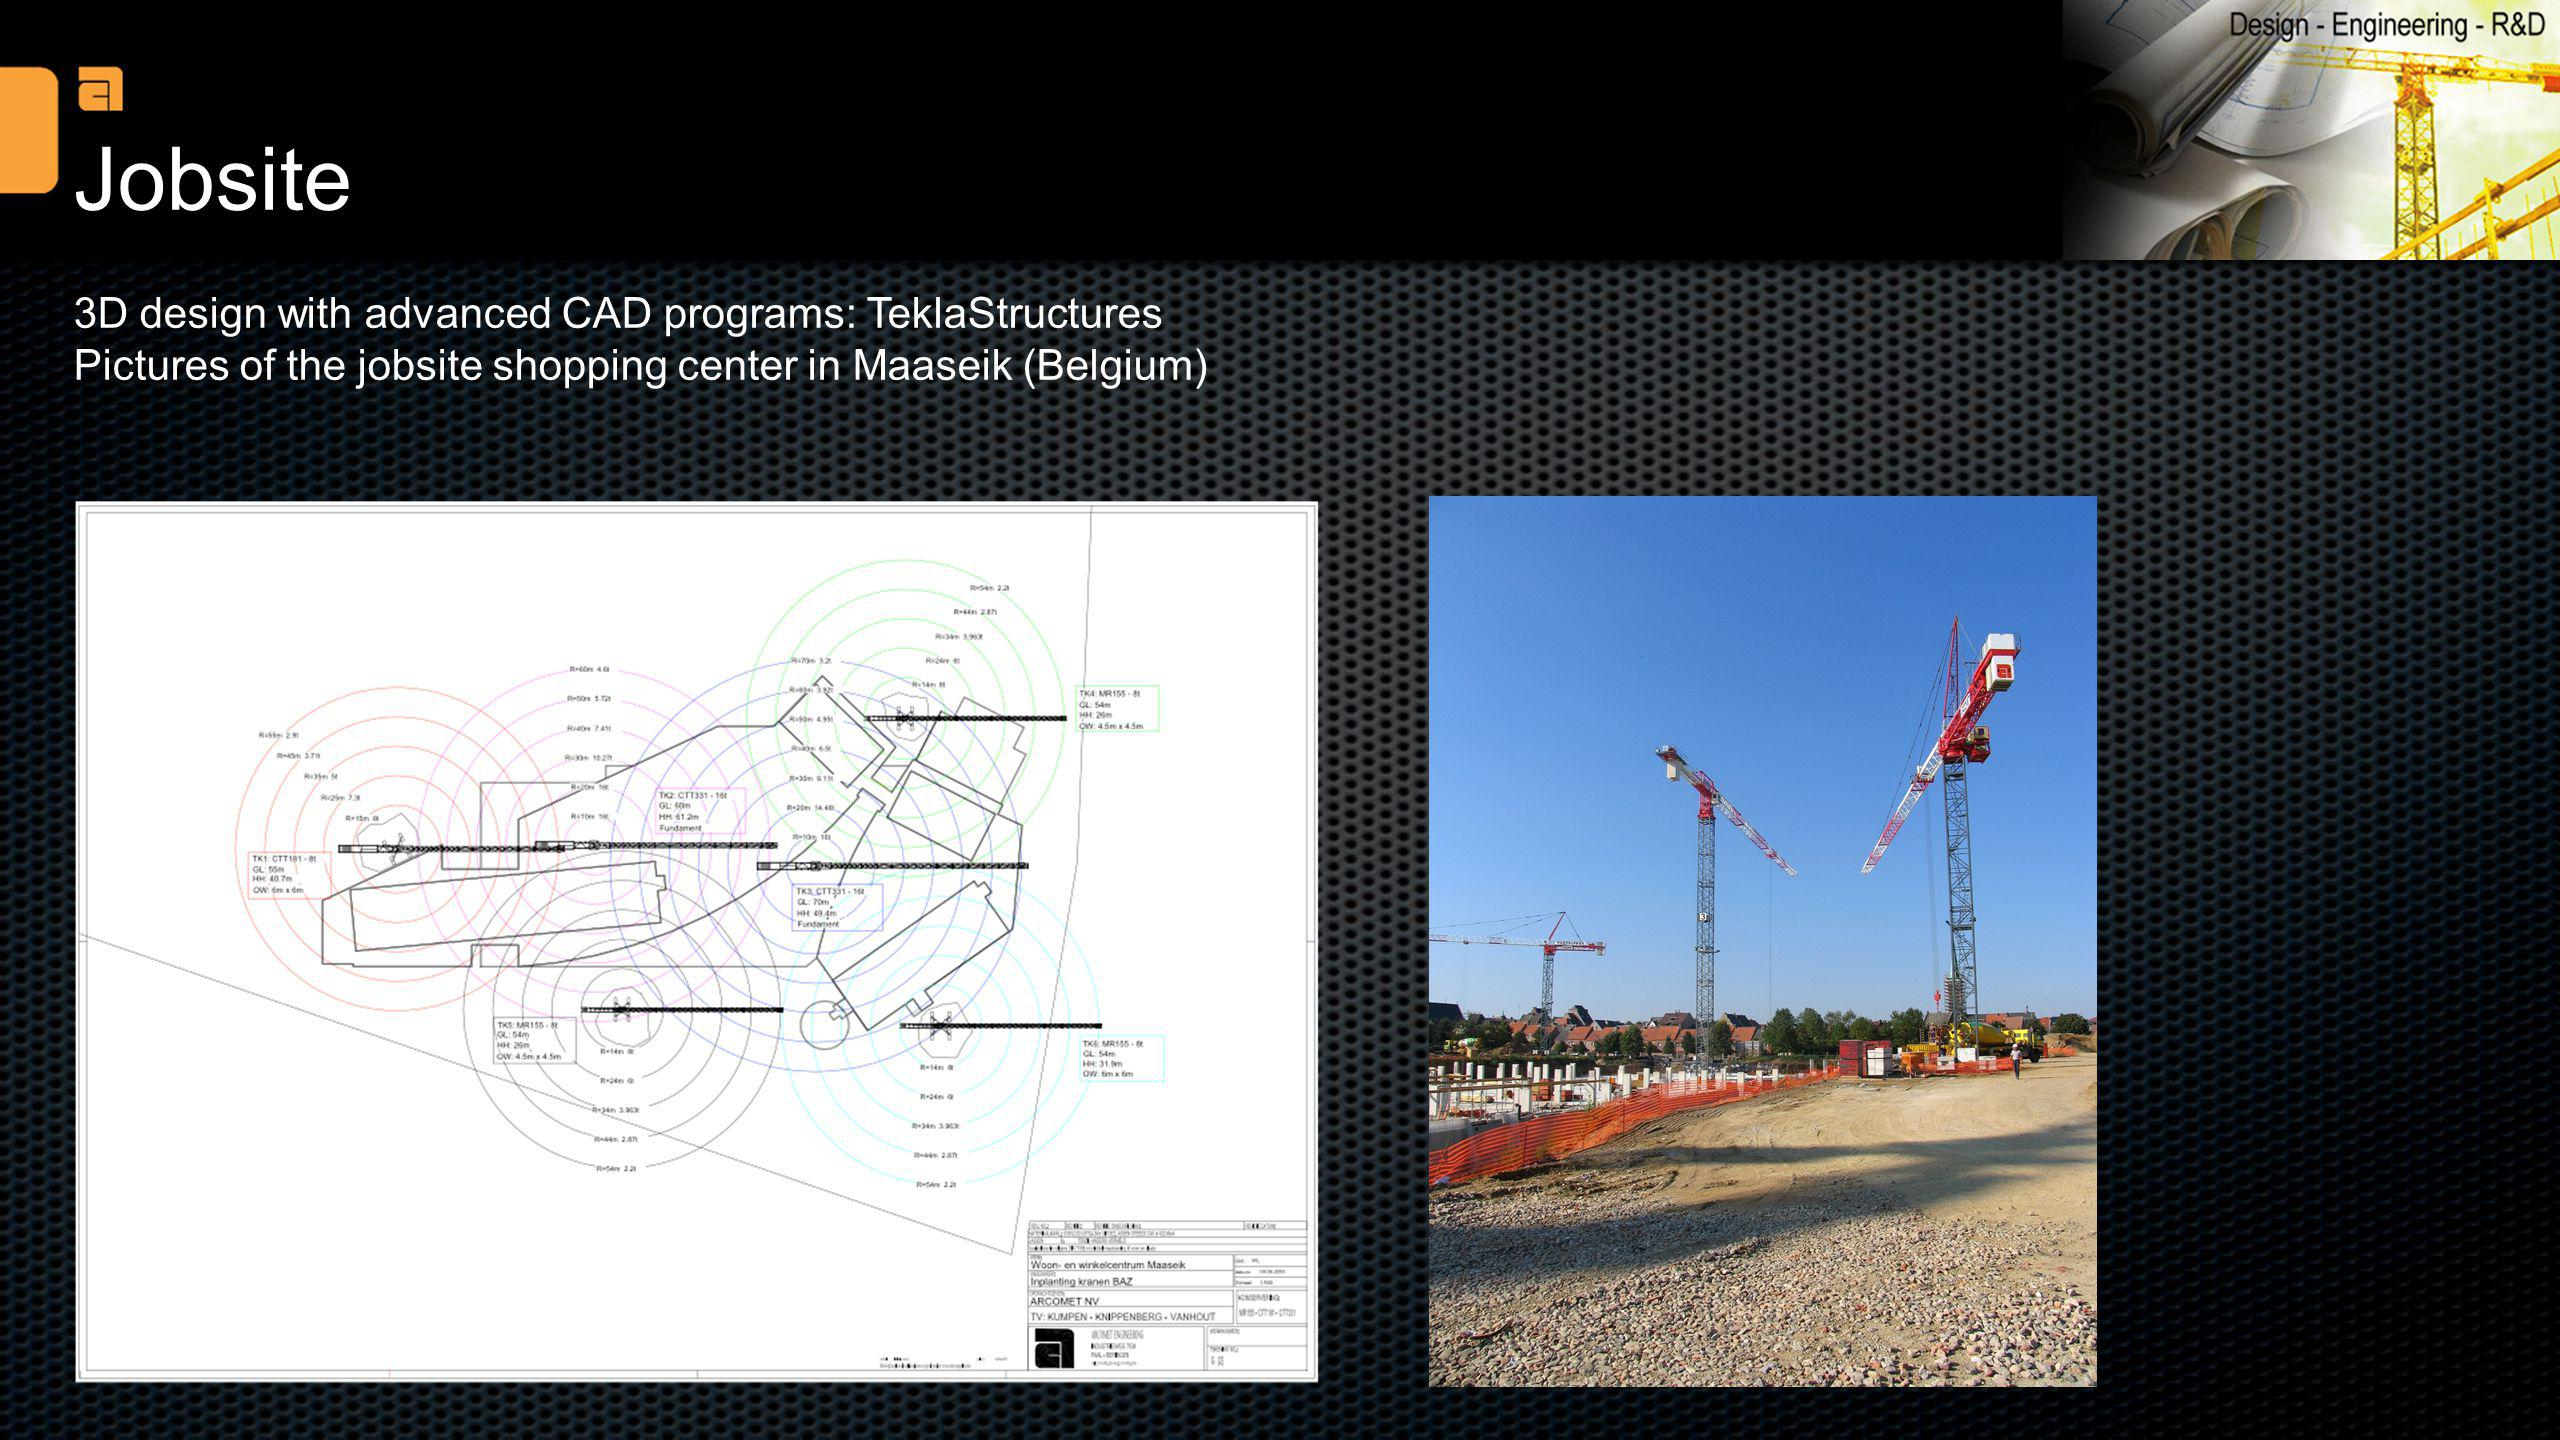 Jobsite 3D design with advanced CAD programs: TeklaStructures